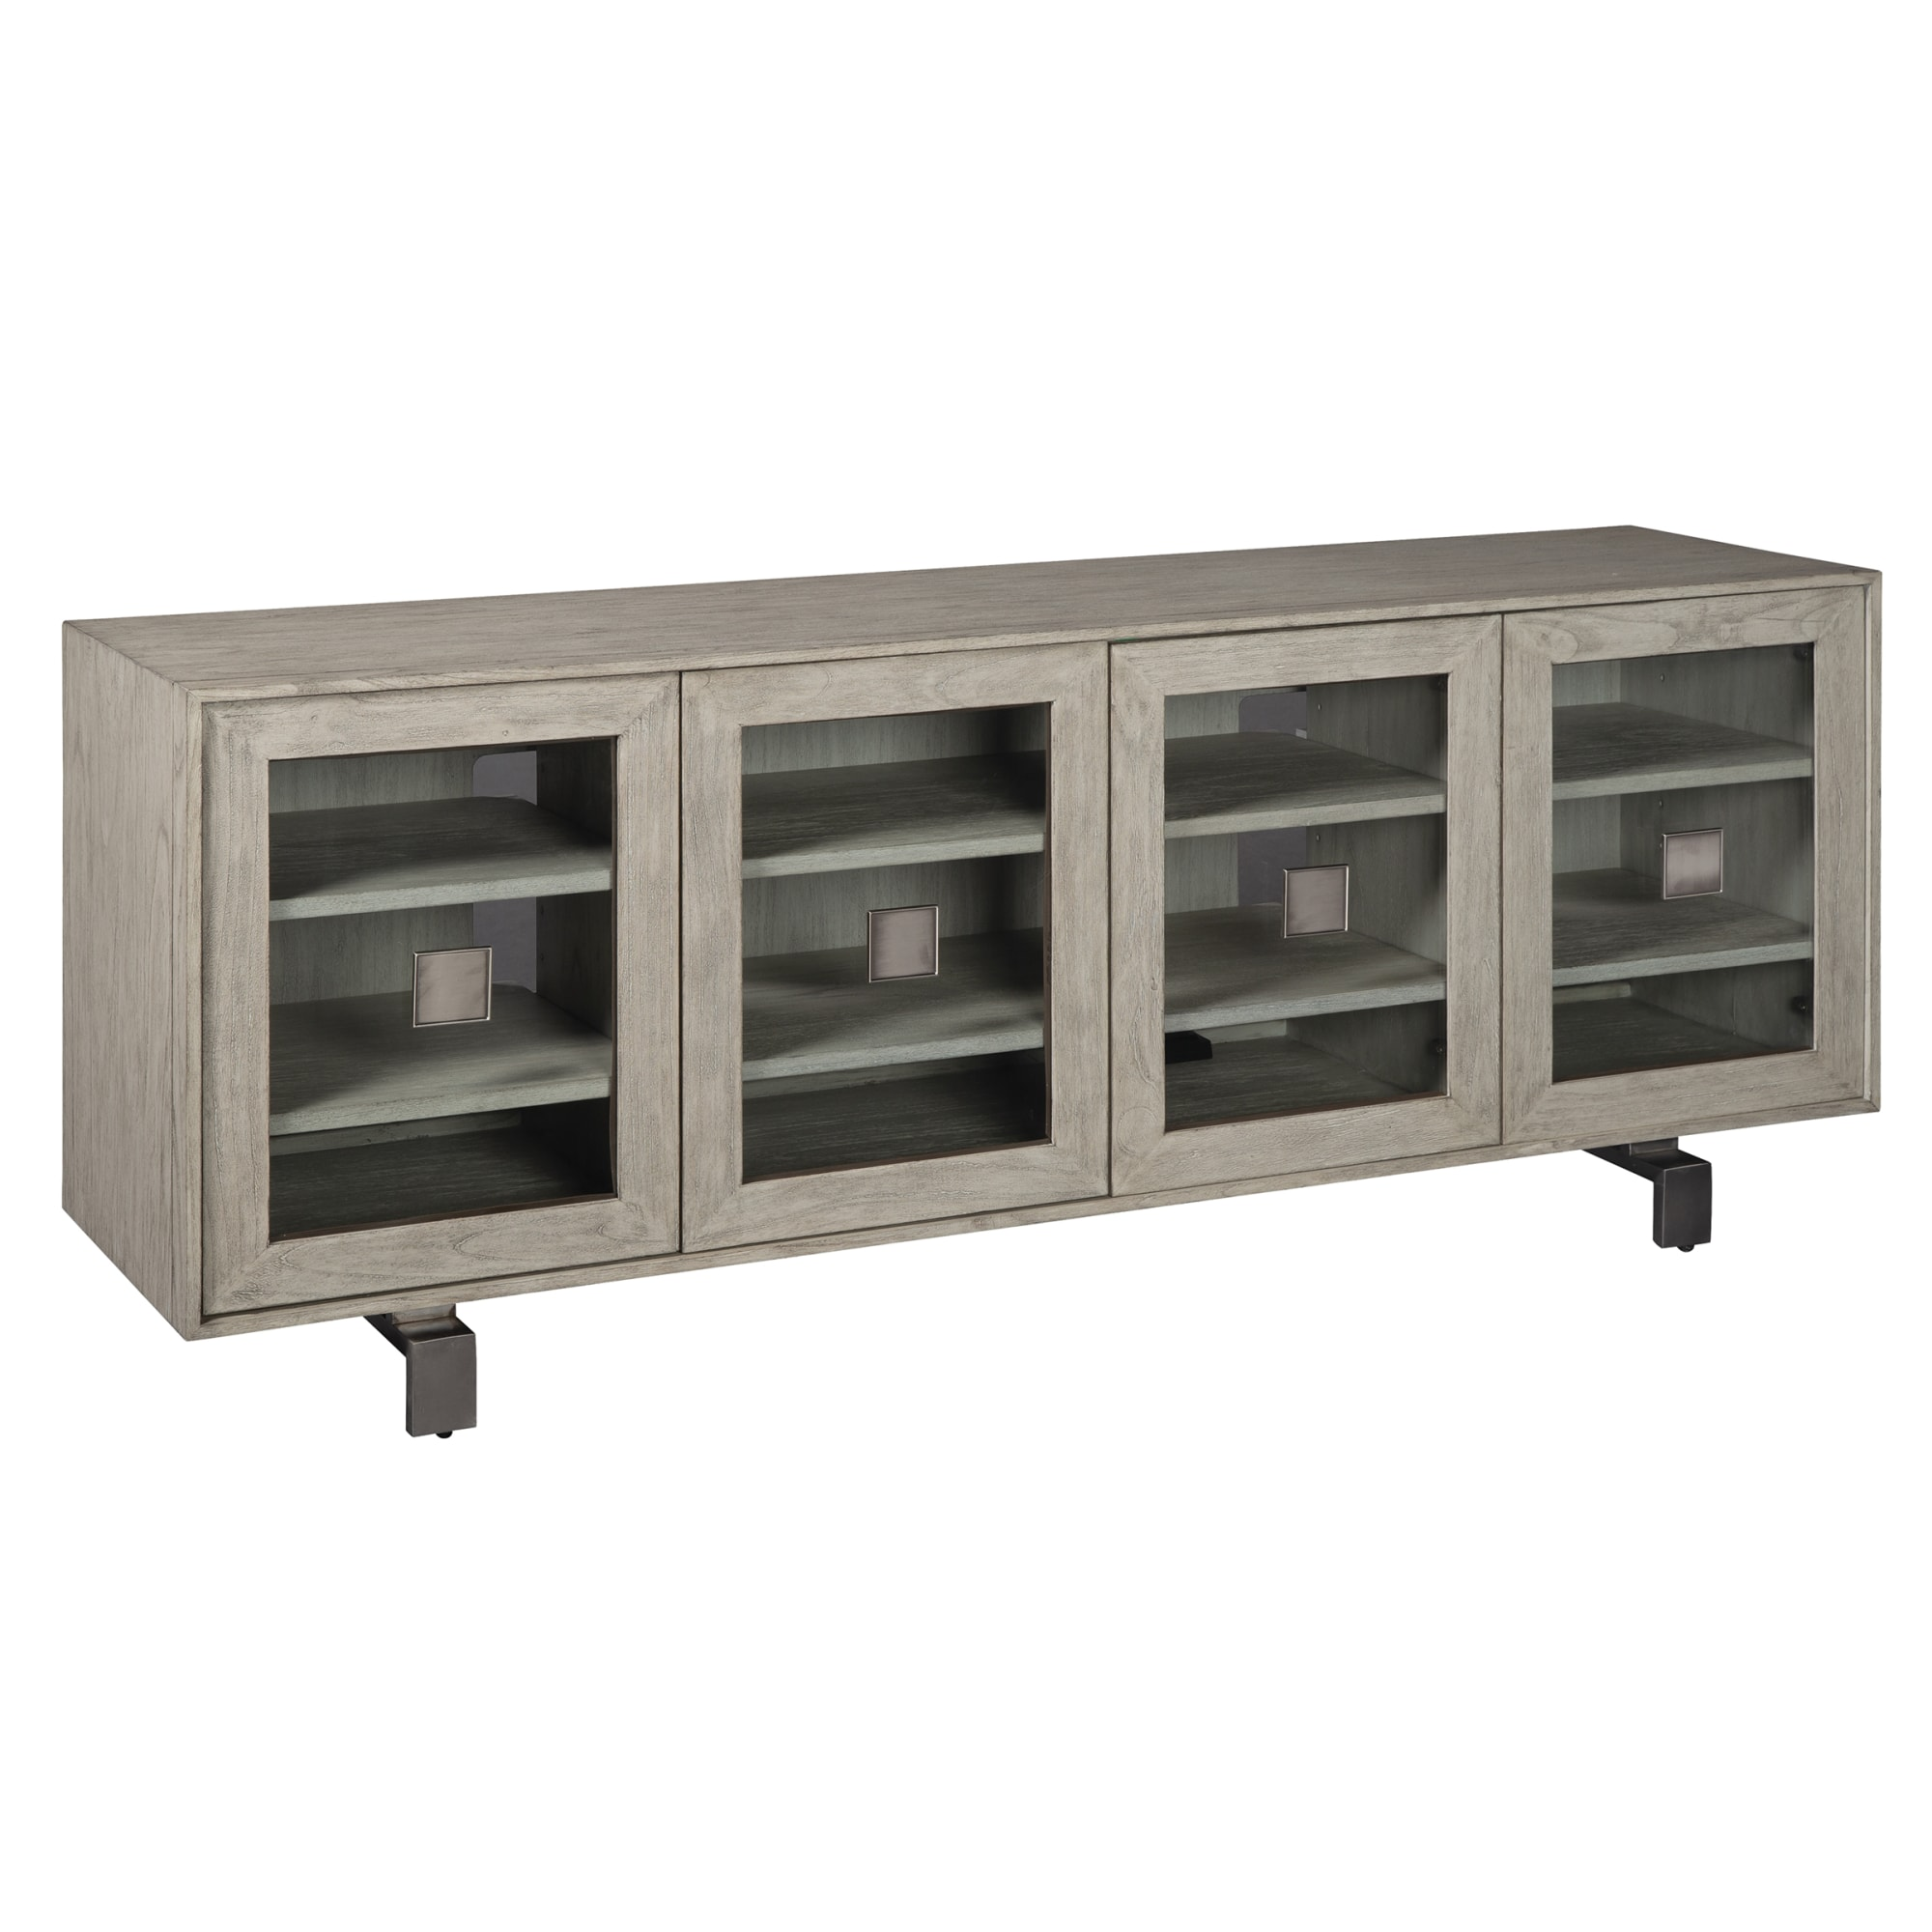 Image for 2-4450 Entertainment Center from Hekman Official Website